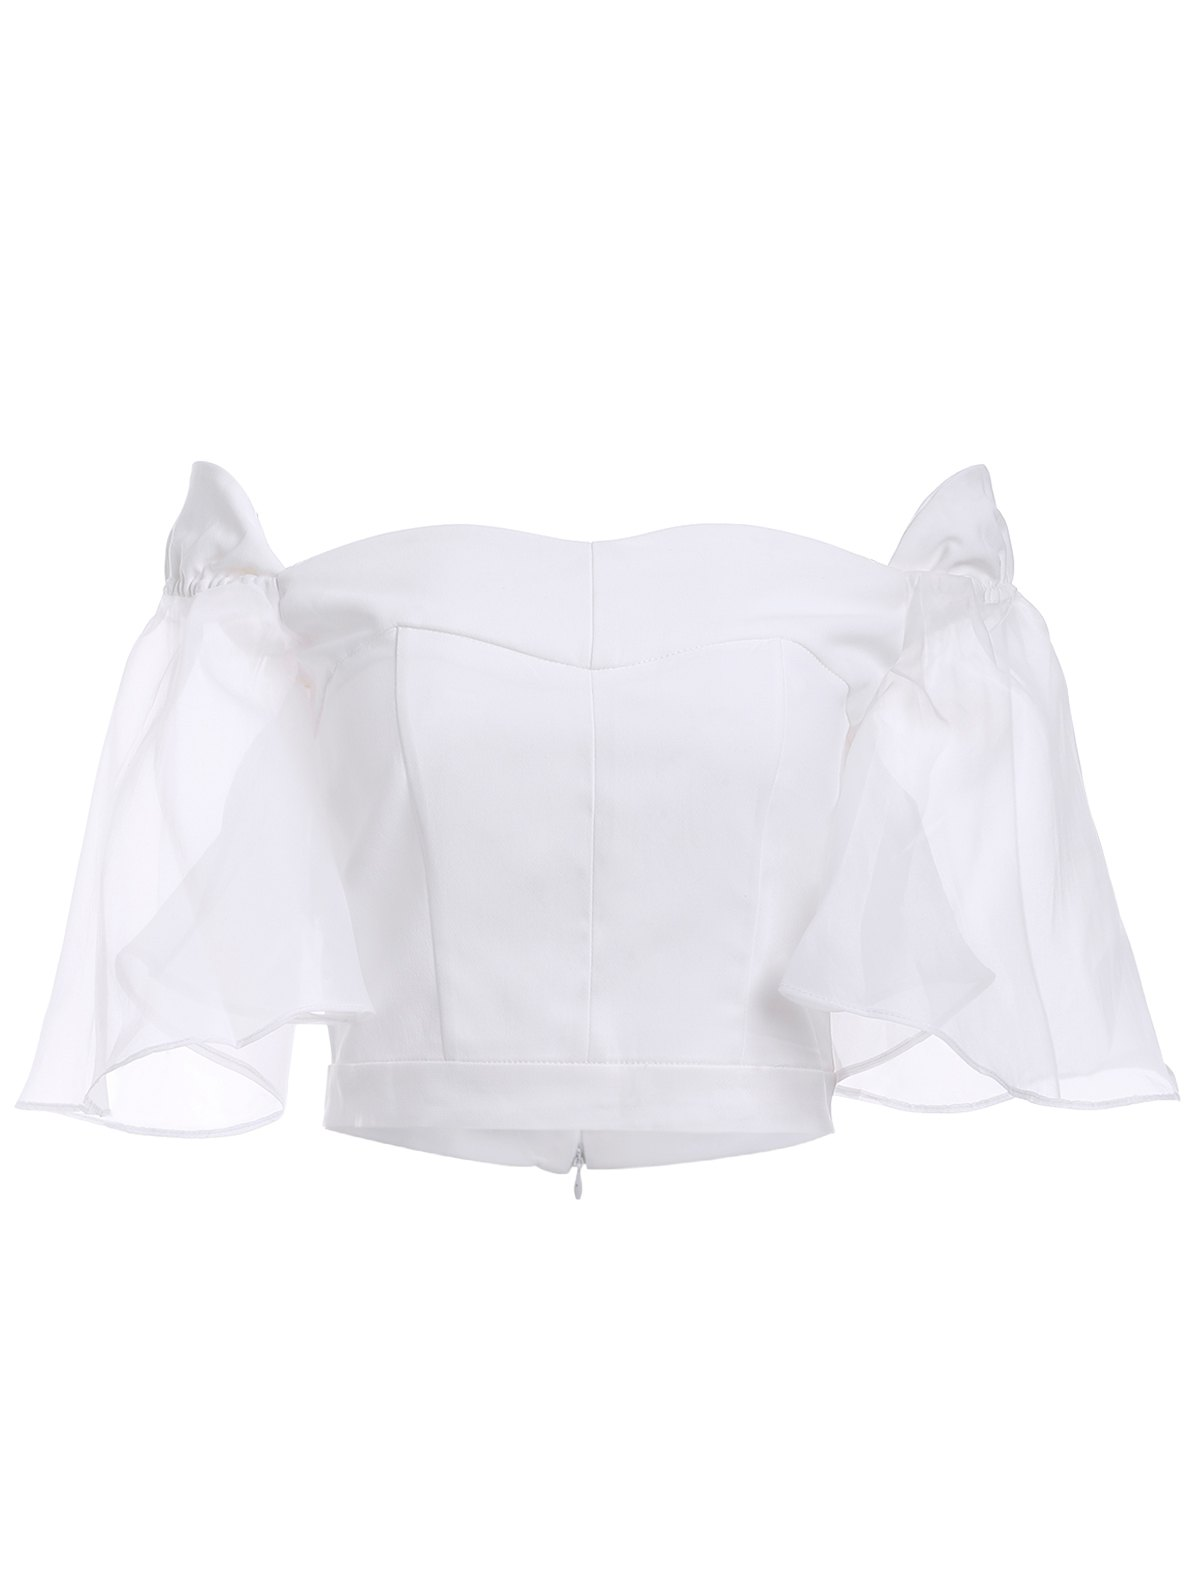 Sweet Women's Off-The-Shoulder Chiffon Puff Sleeves Crop Top - WHITE M